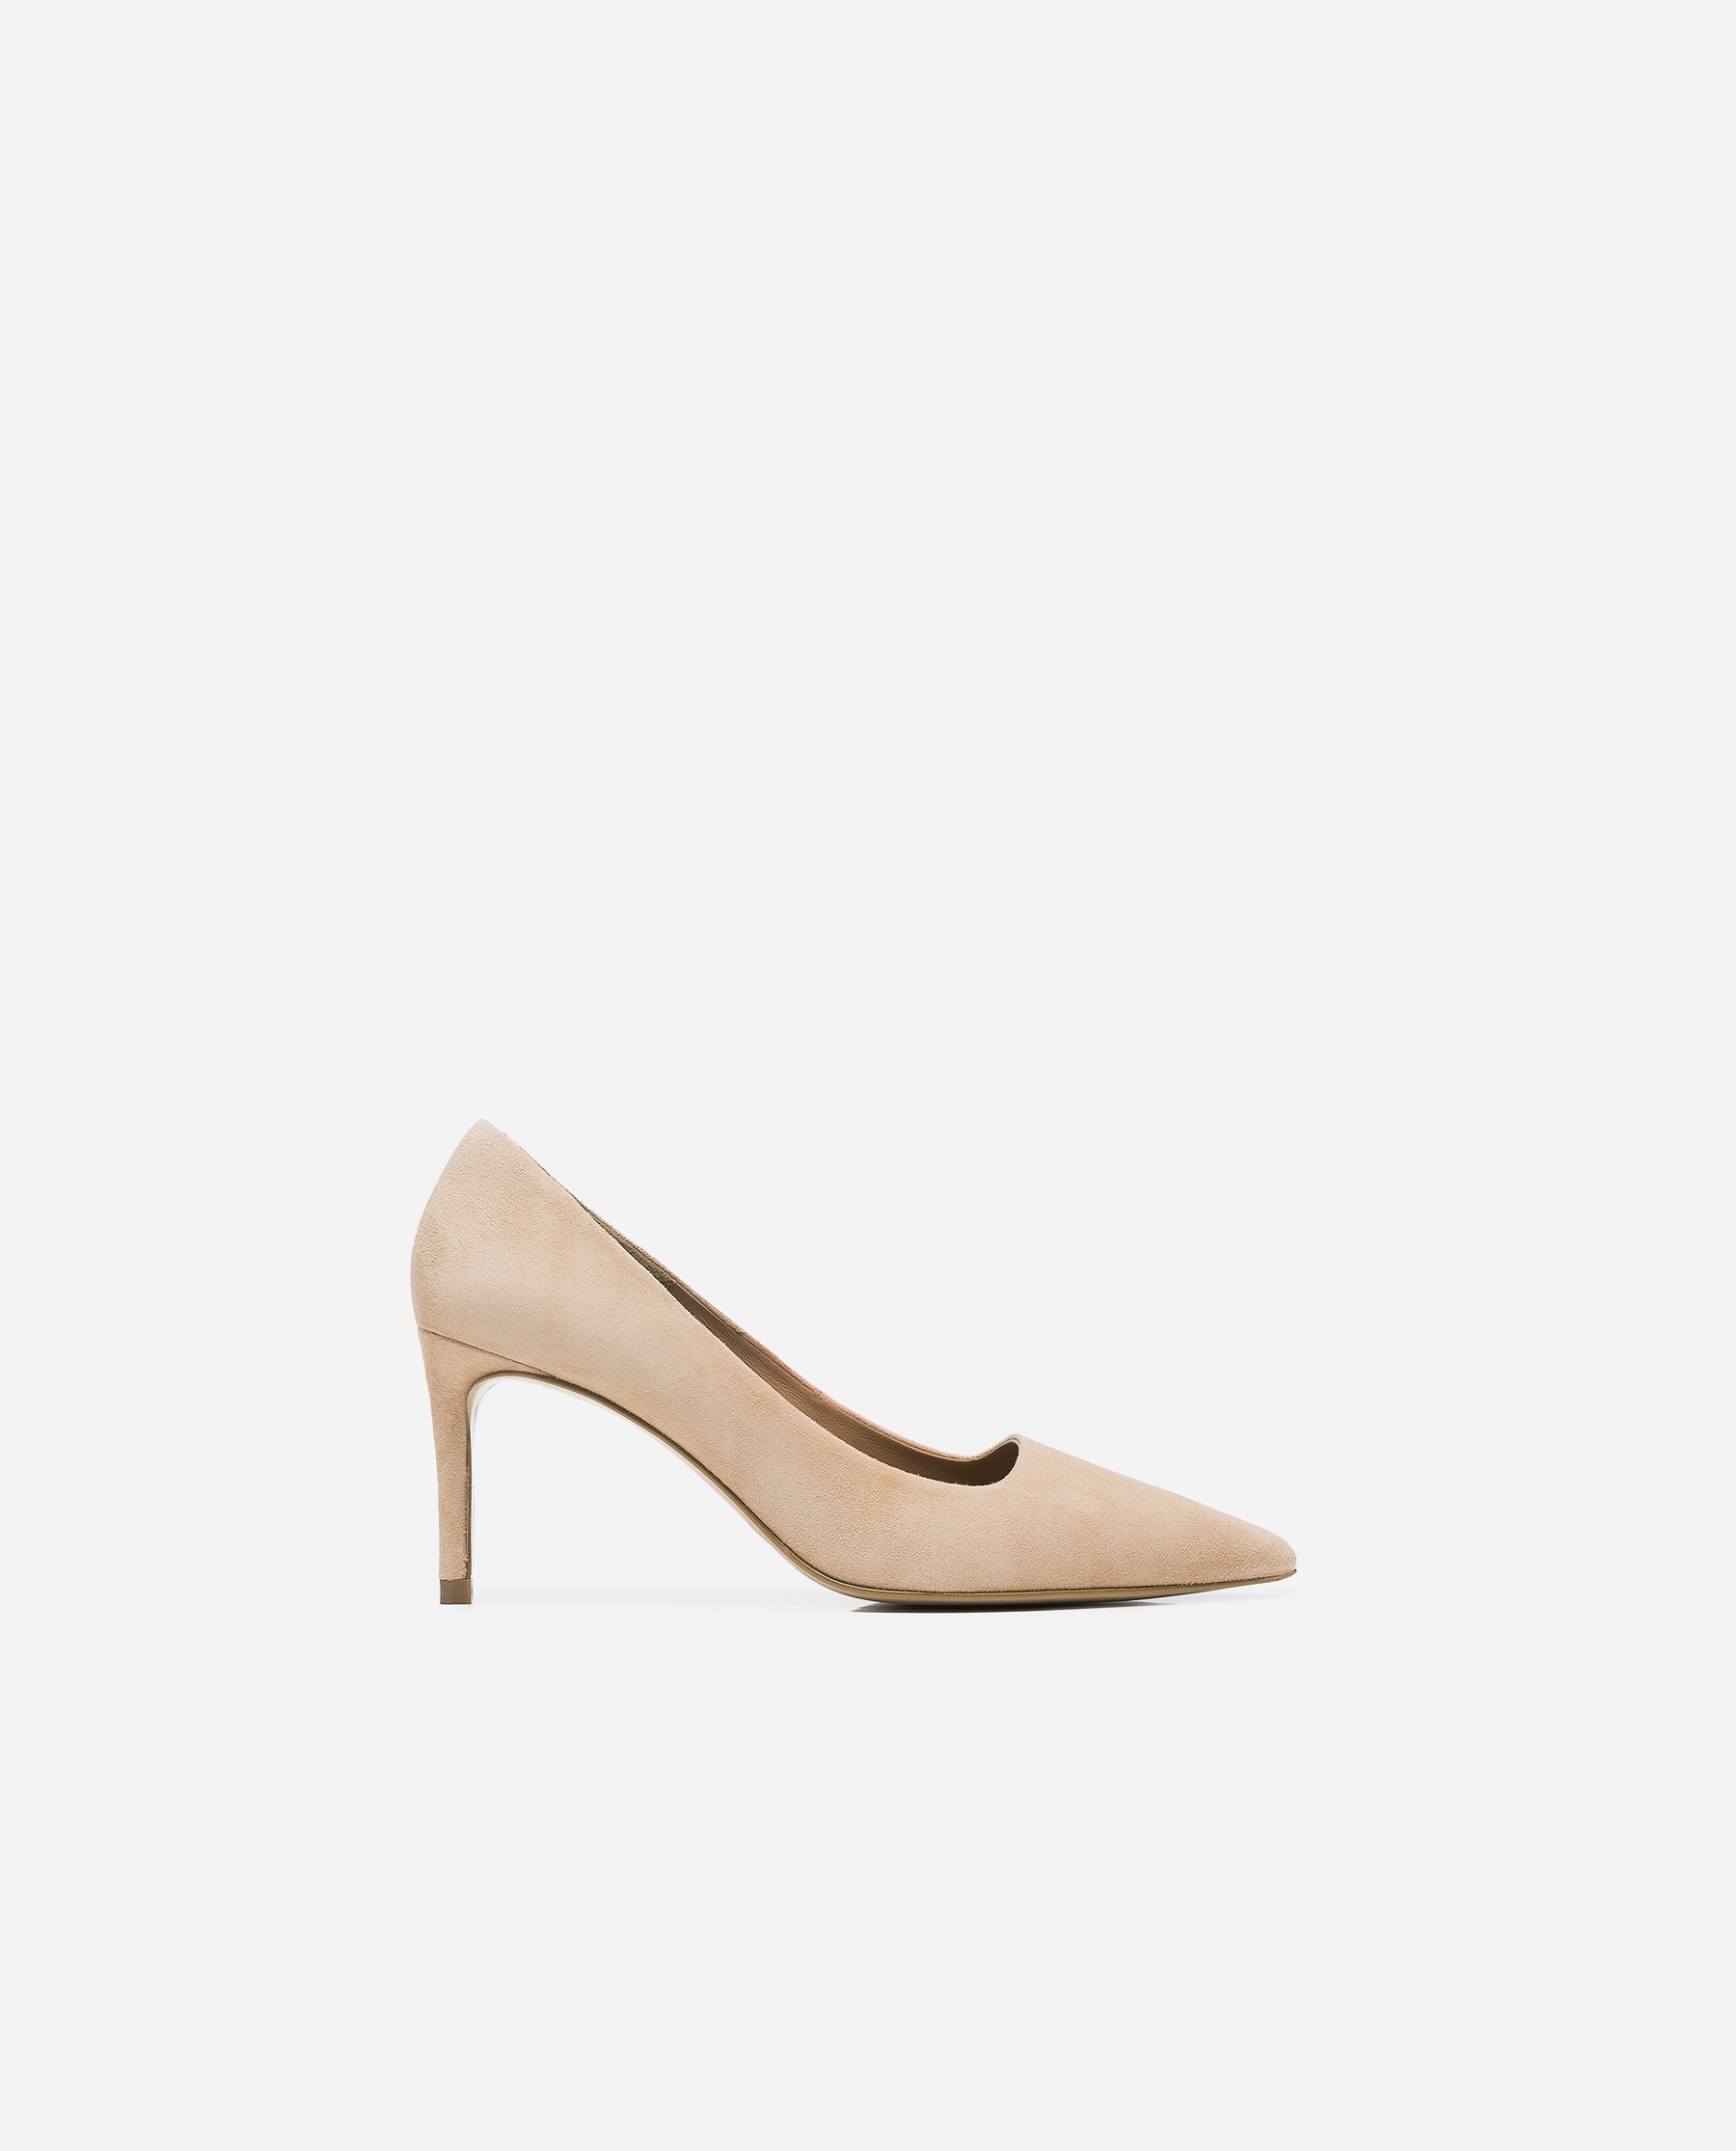 FLATTERED-CHARLIE-PUMP-PEACHSUEDE-SIDE(HQ)new